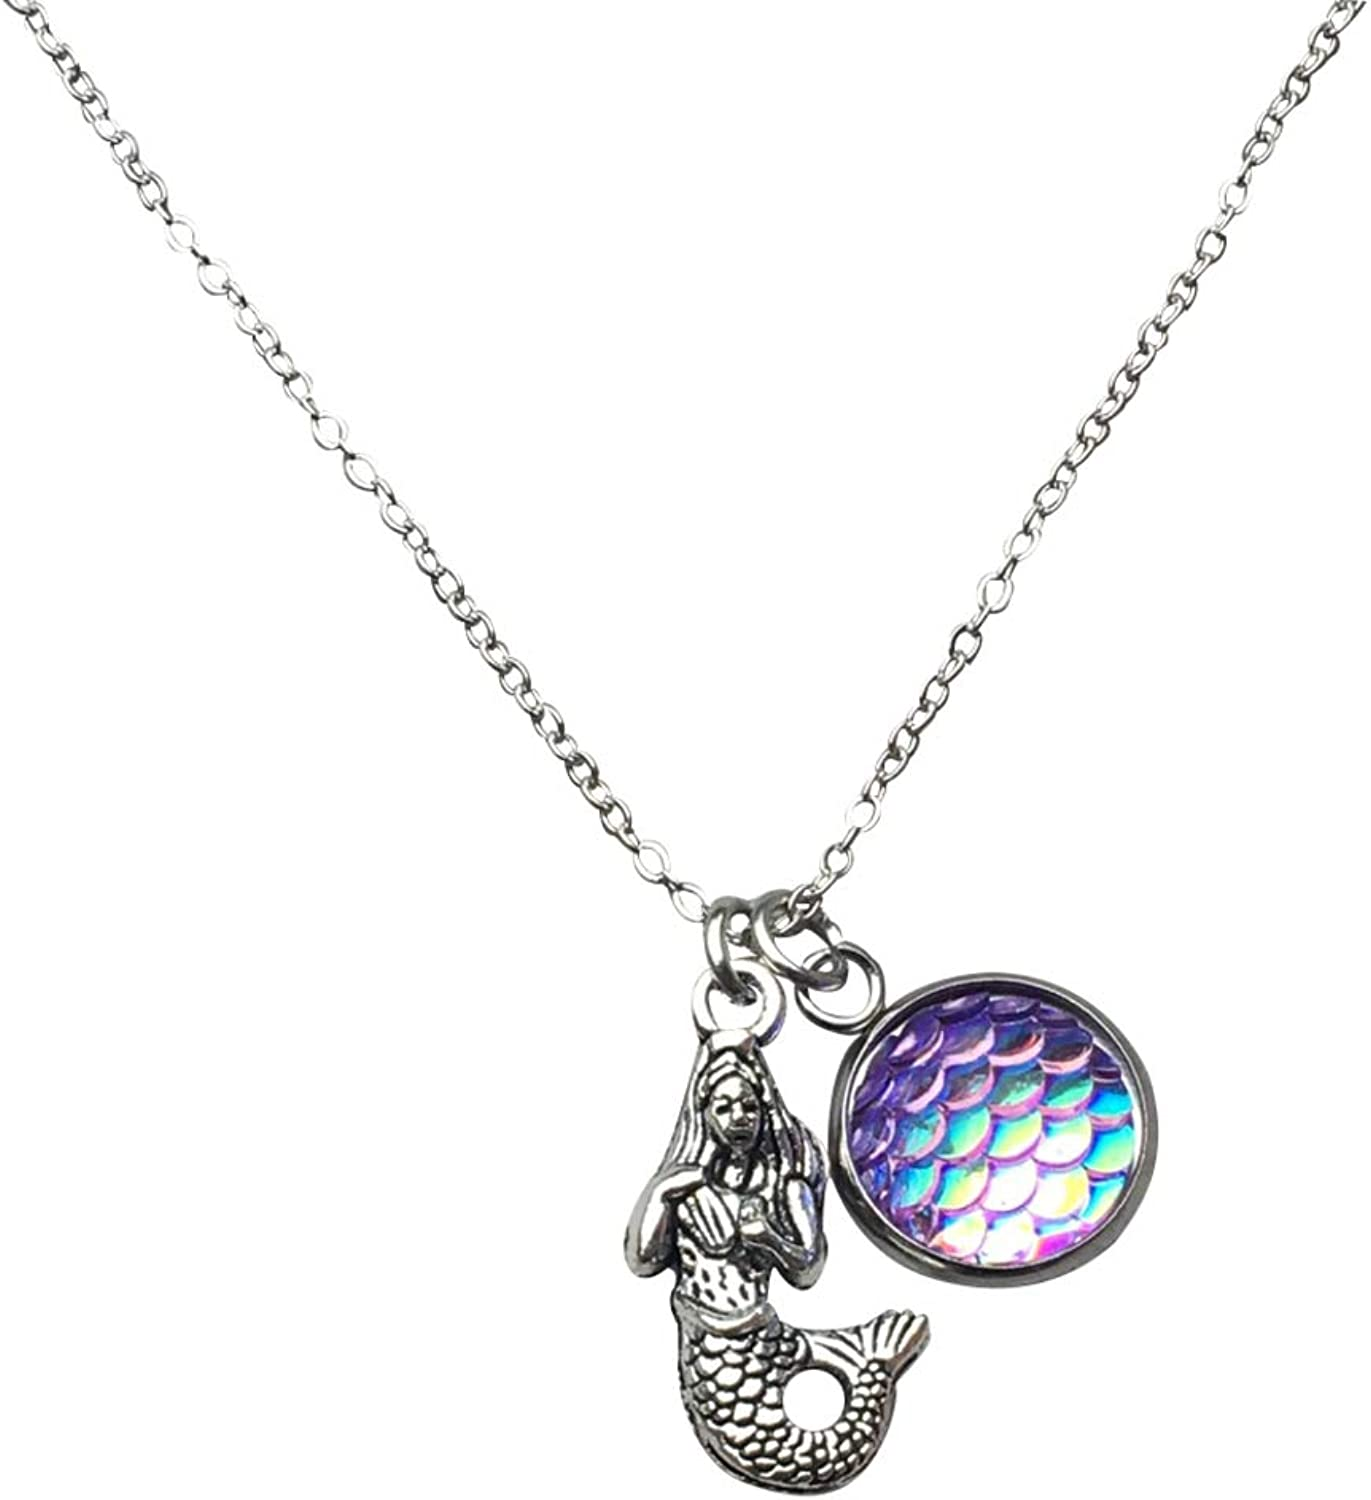 Infinity Collection Mermaid Pendant Necklace, Mermaid Scale Charm Jewelry Idea